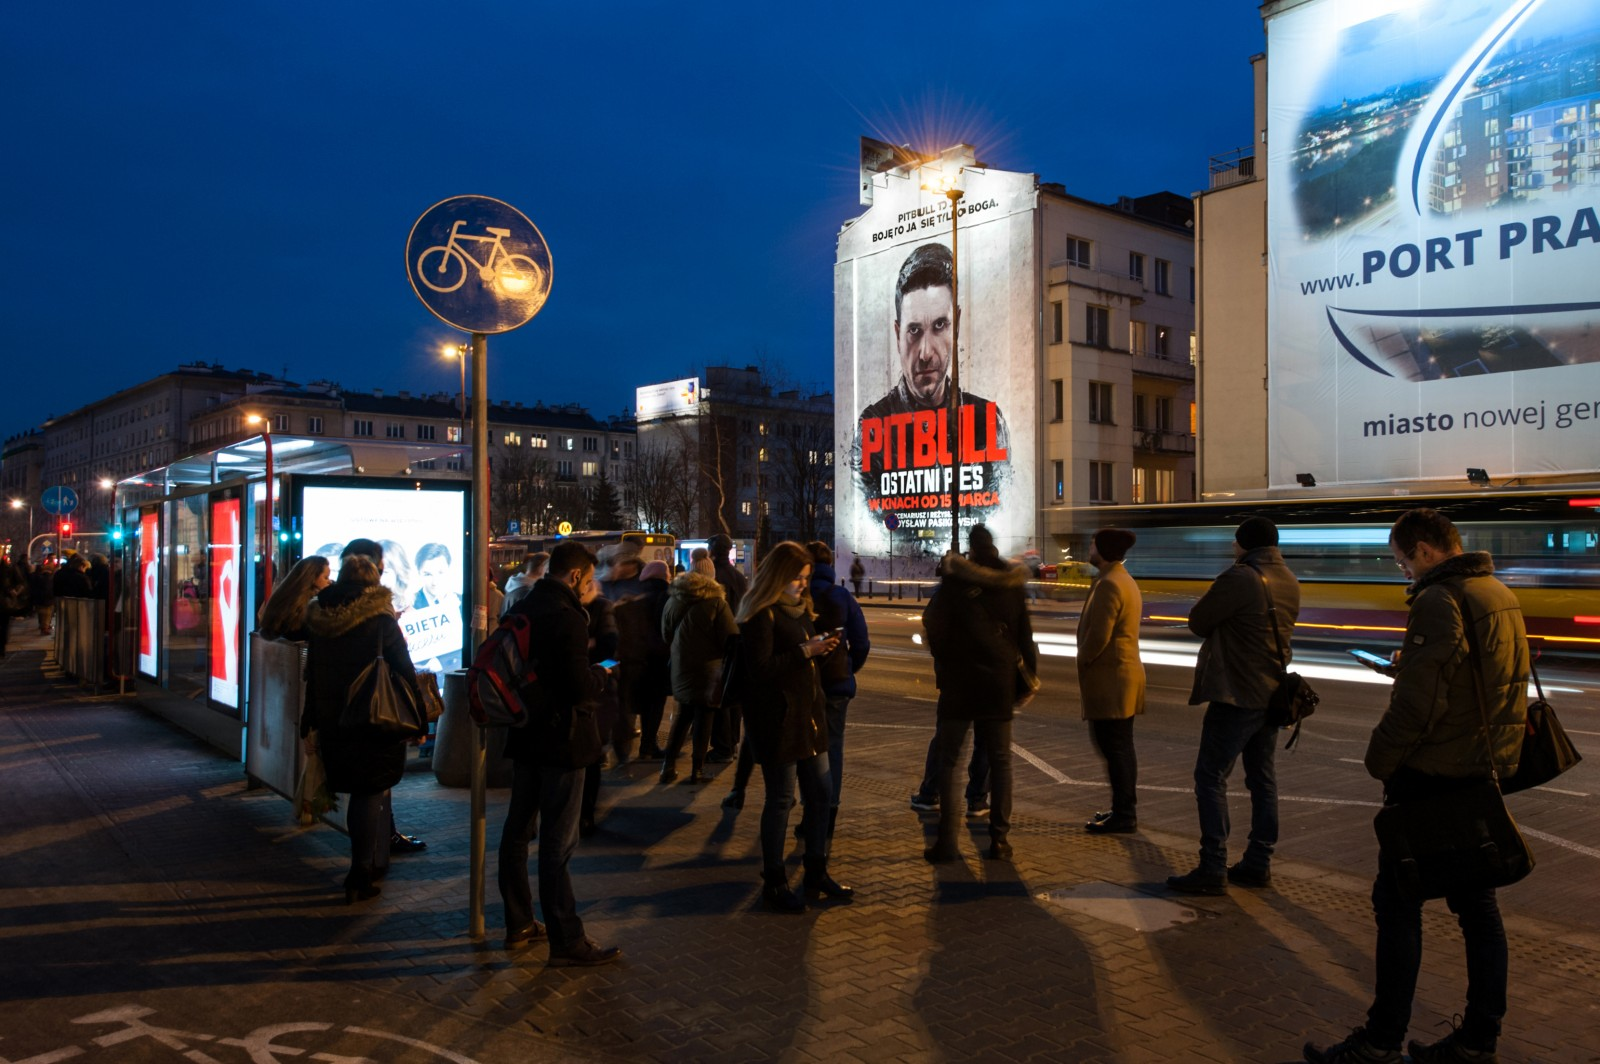 An advertising mural on ludwika warynskiego in warsaw painted for filmmaker pitbull | Pitbull. Ostatni pies | Portfolio